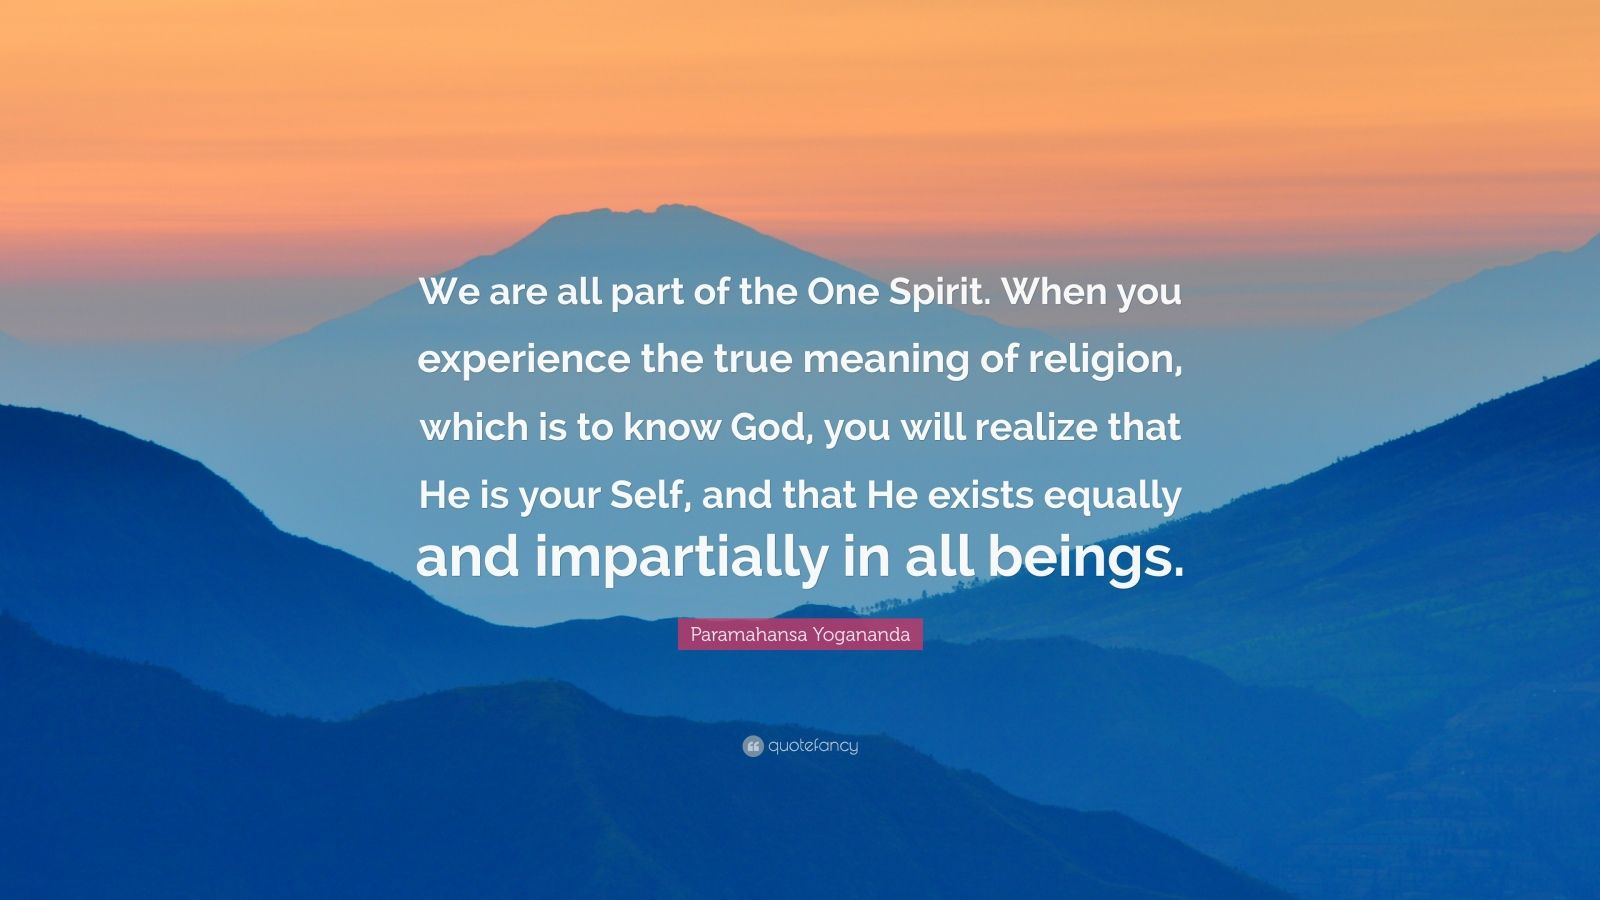 """Paramahansa Yogananda Quote: """"We are all part of the One Spirit. When you experience the true meaning of religion, which is to know God, you will realize that He is your Self, and that He exists equally and impartially in all beings."""""""